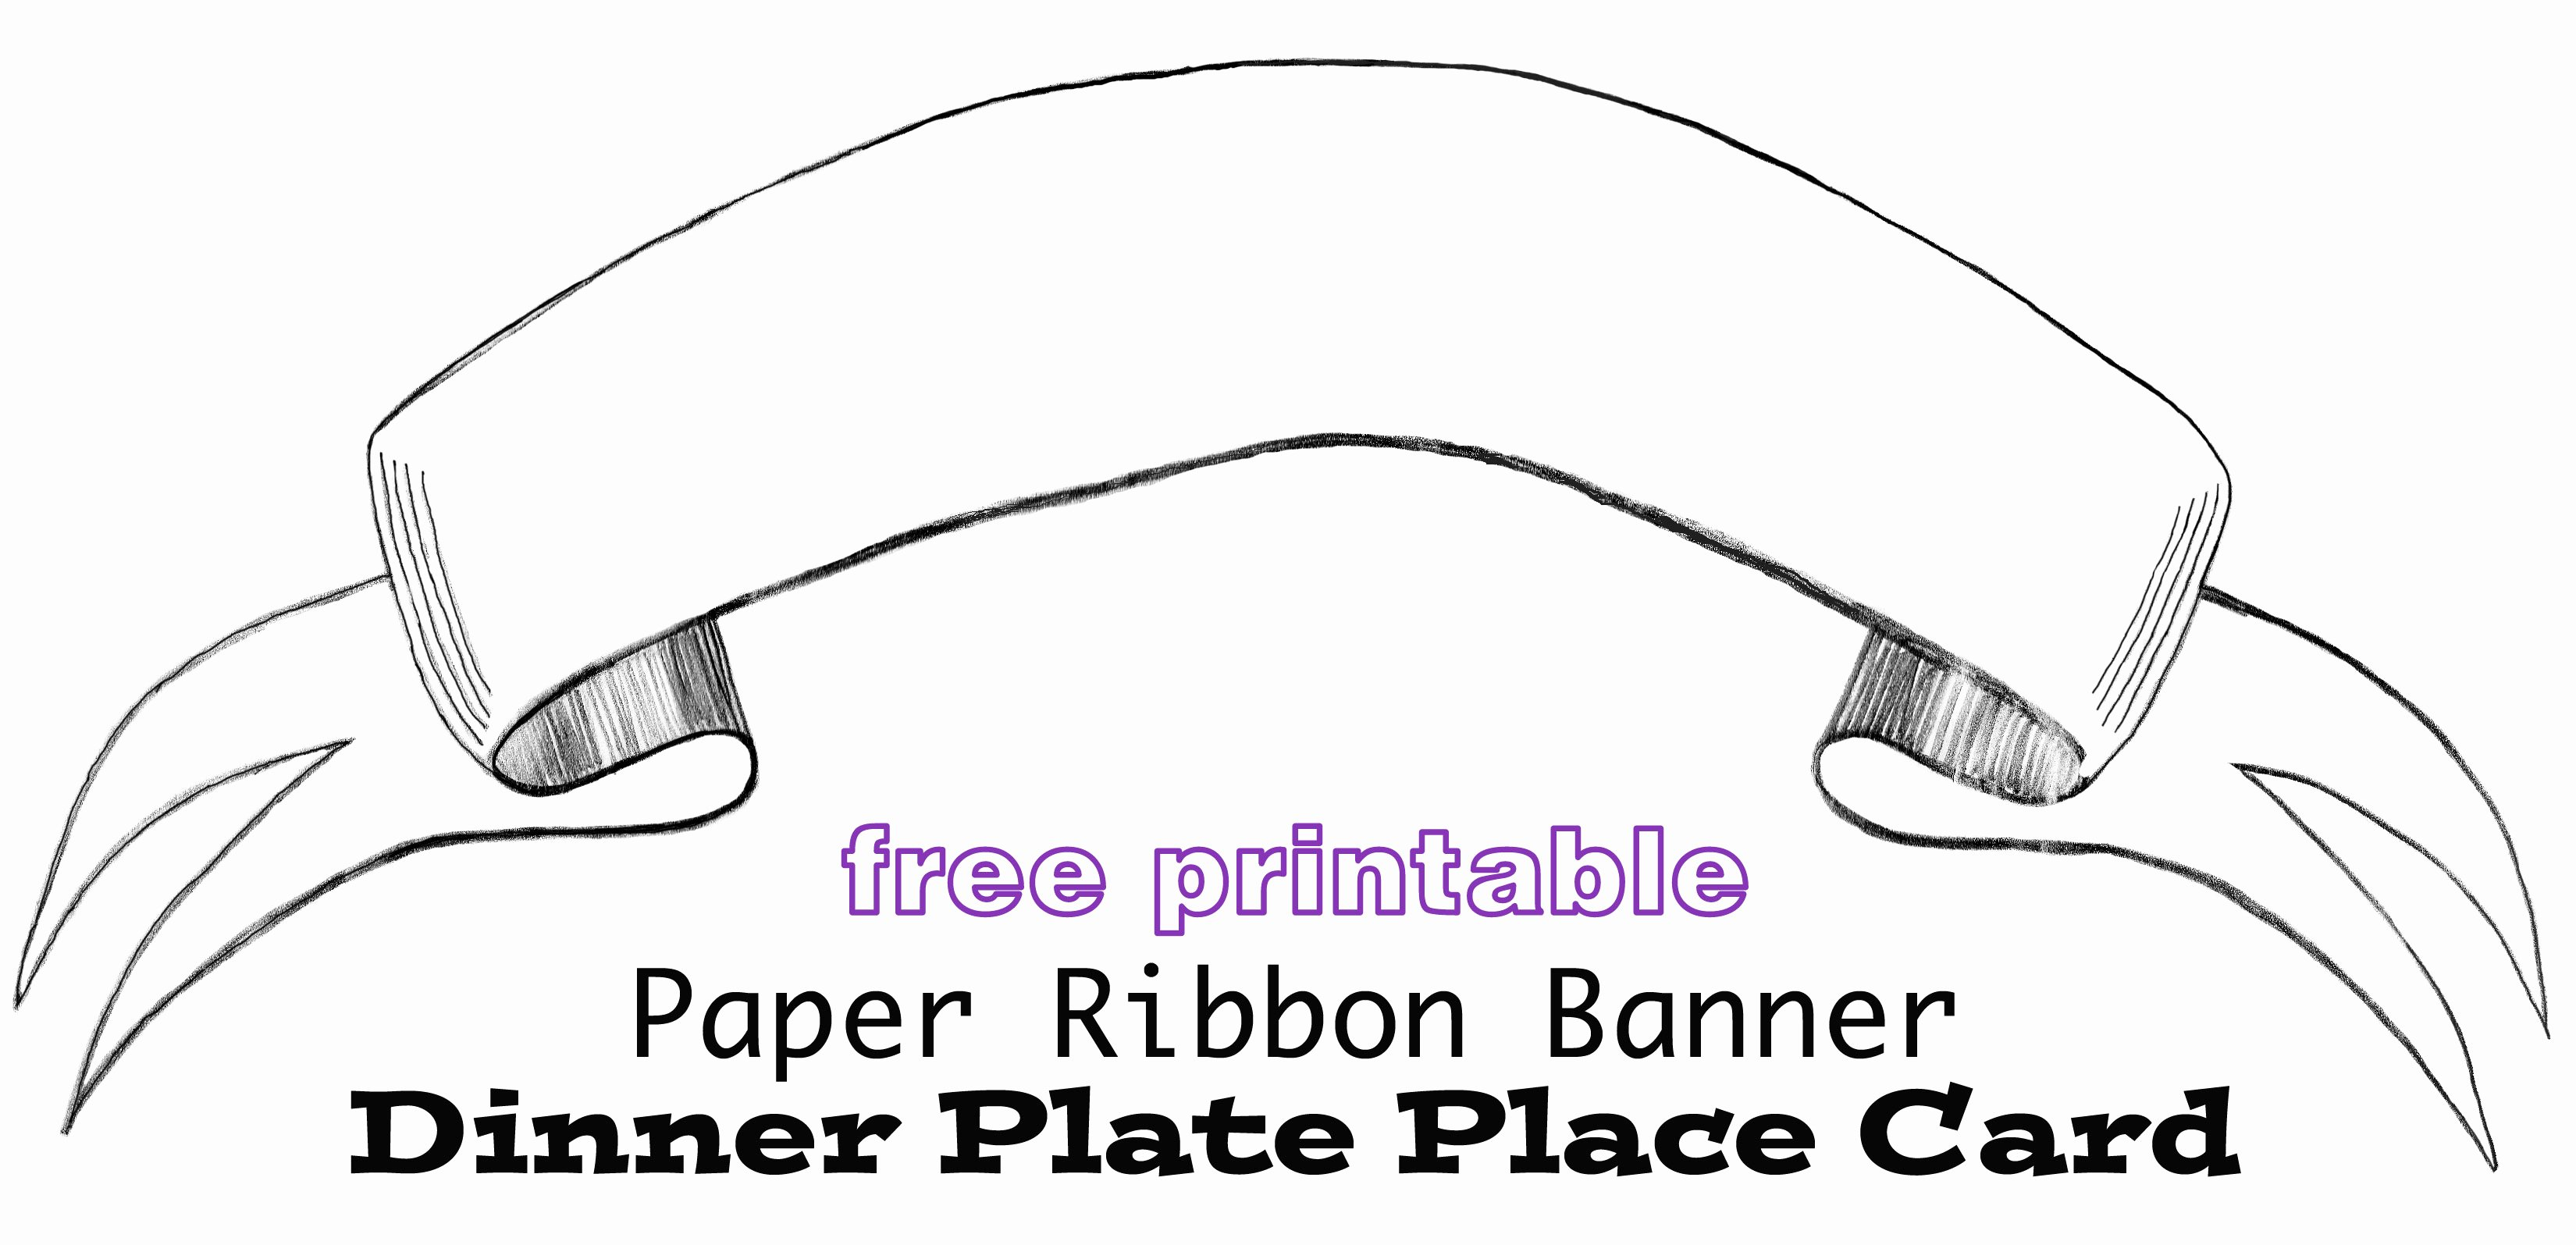 Free Printable Banner Template Awesome Printable Paper Banner Dinner Plate Place Card In My Own